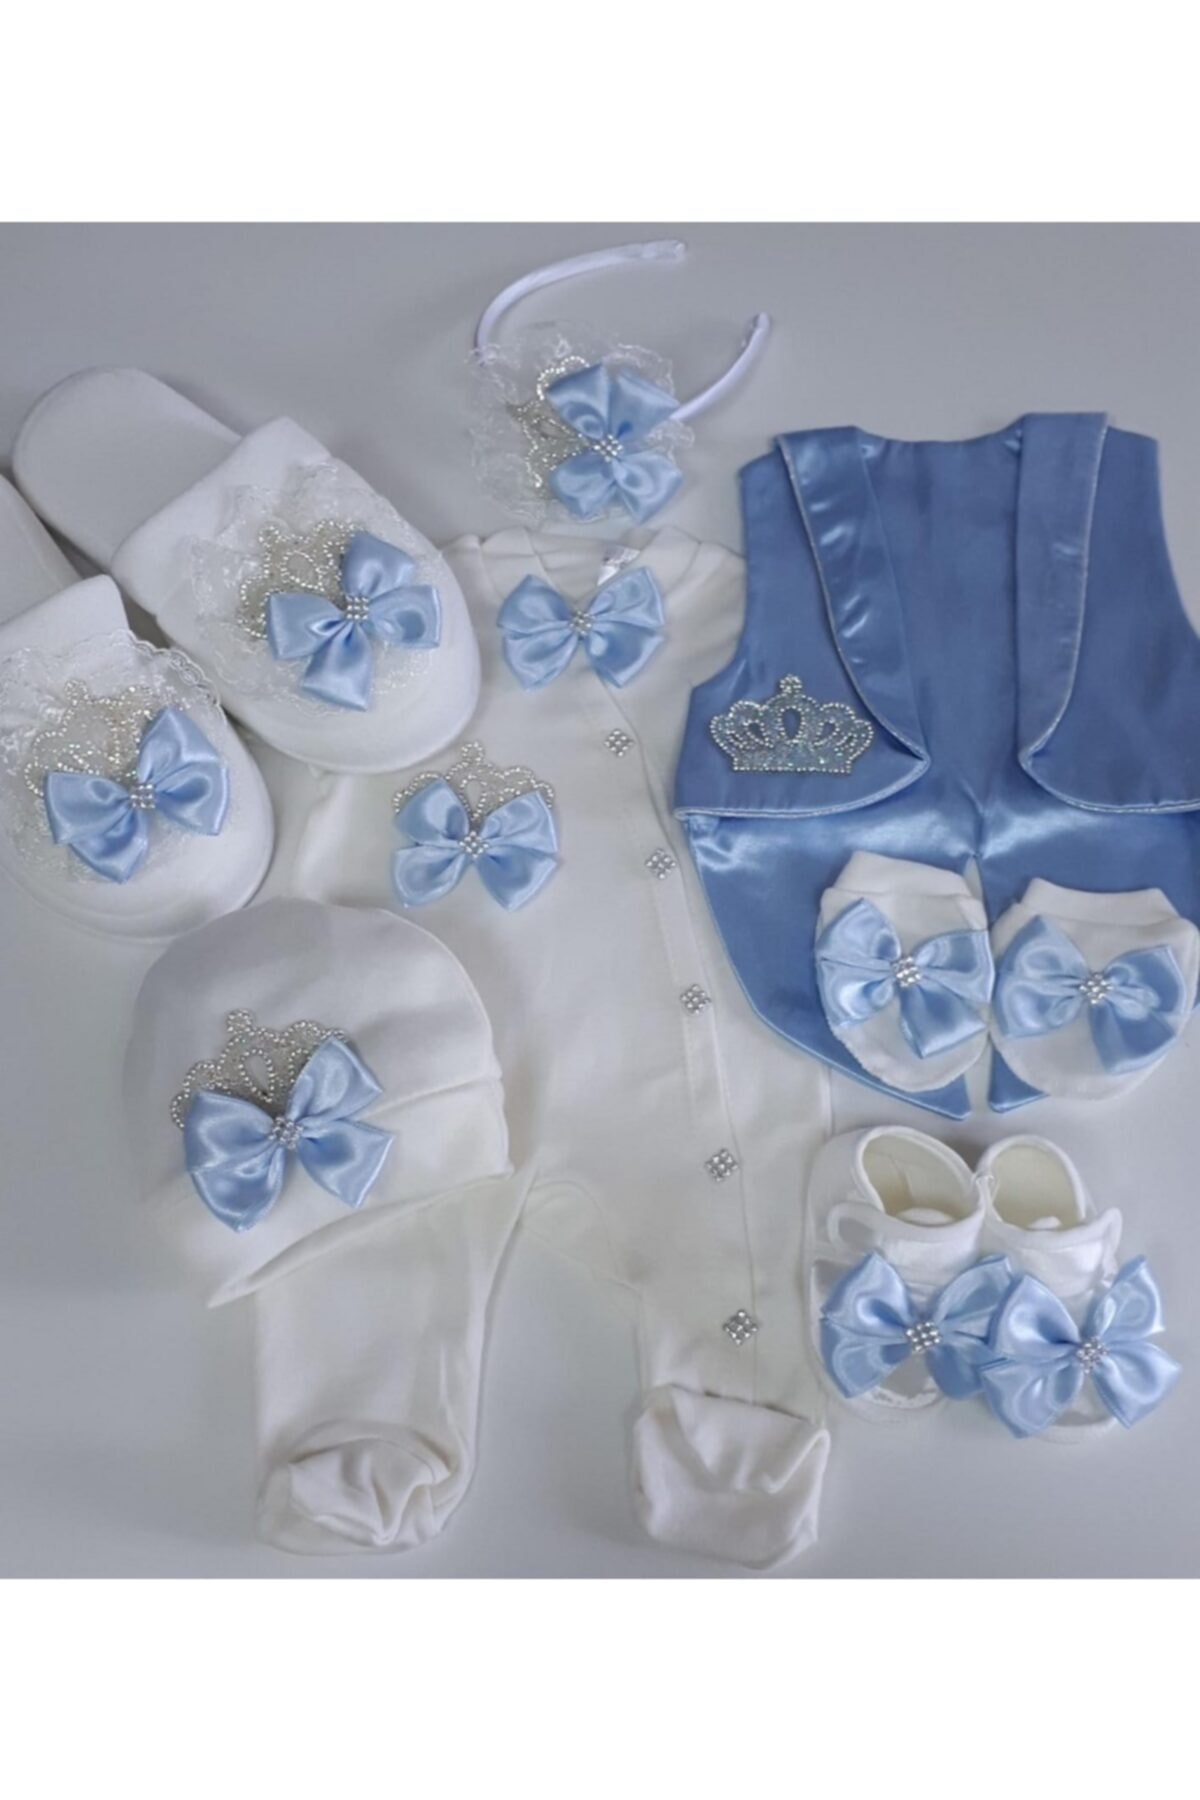 Baby Boy Hospital Outlet Maternity Set Slipper Crown 7 Piece Birth Gift Mother-Baby Products 2021 fashion, Stylish and Quality